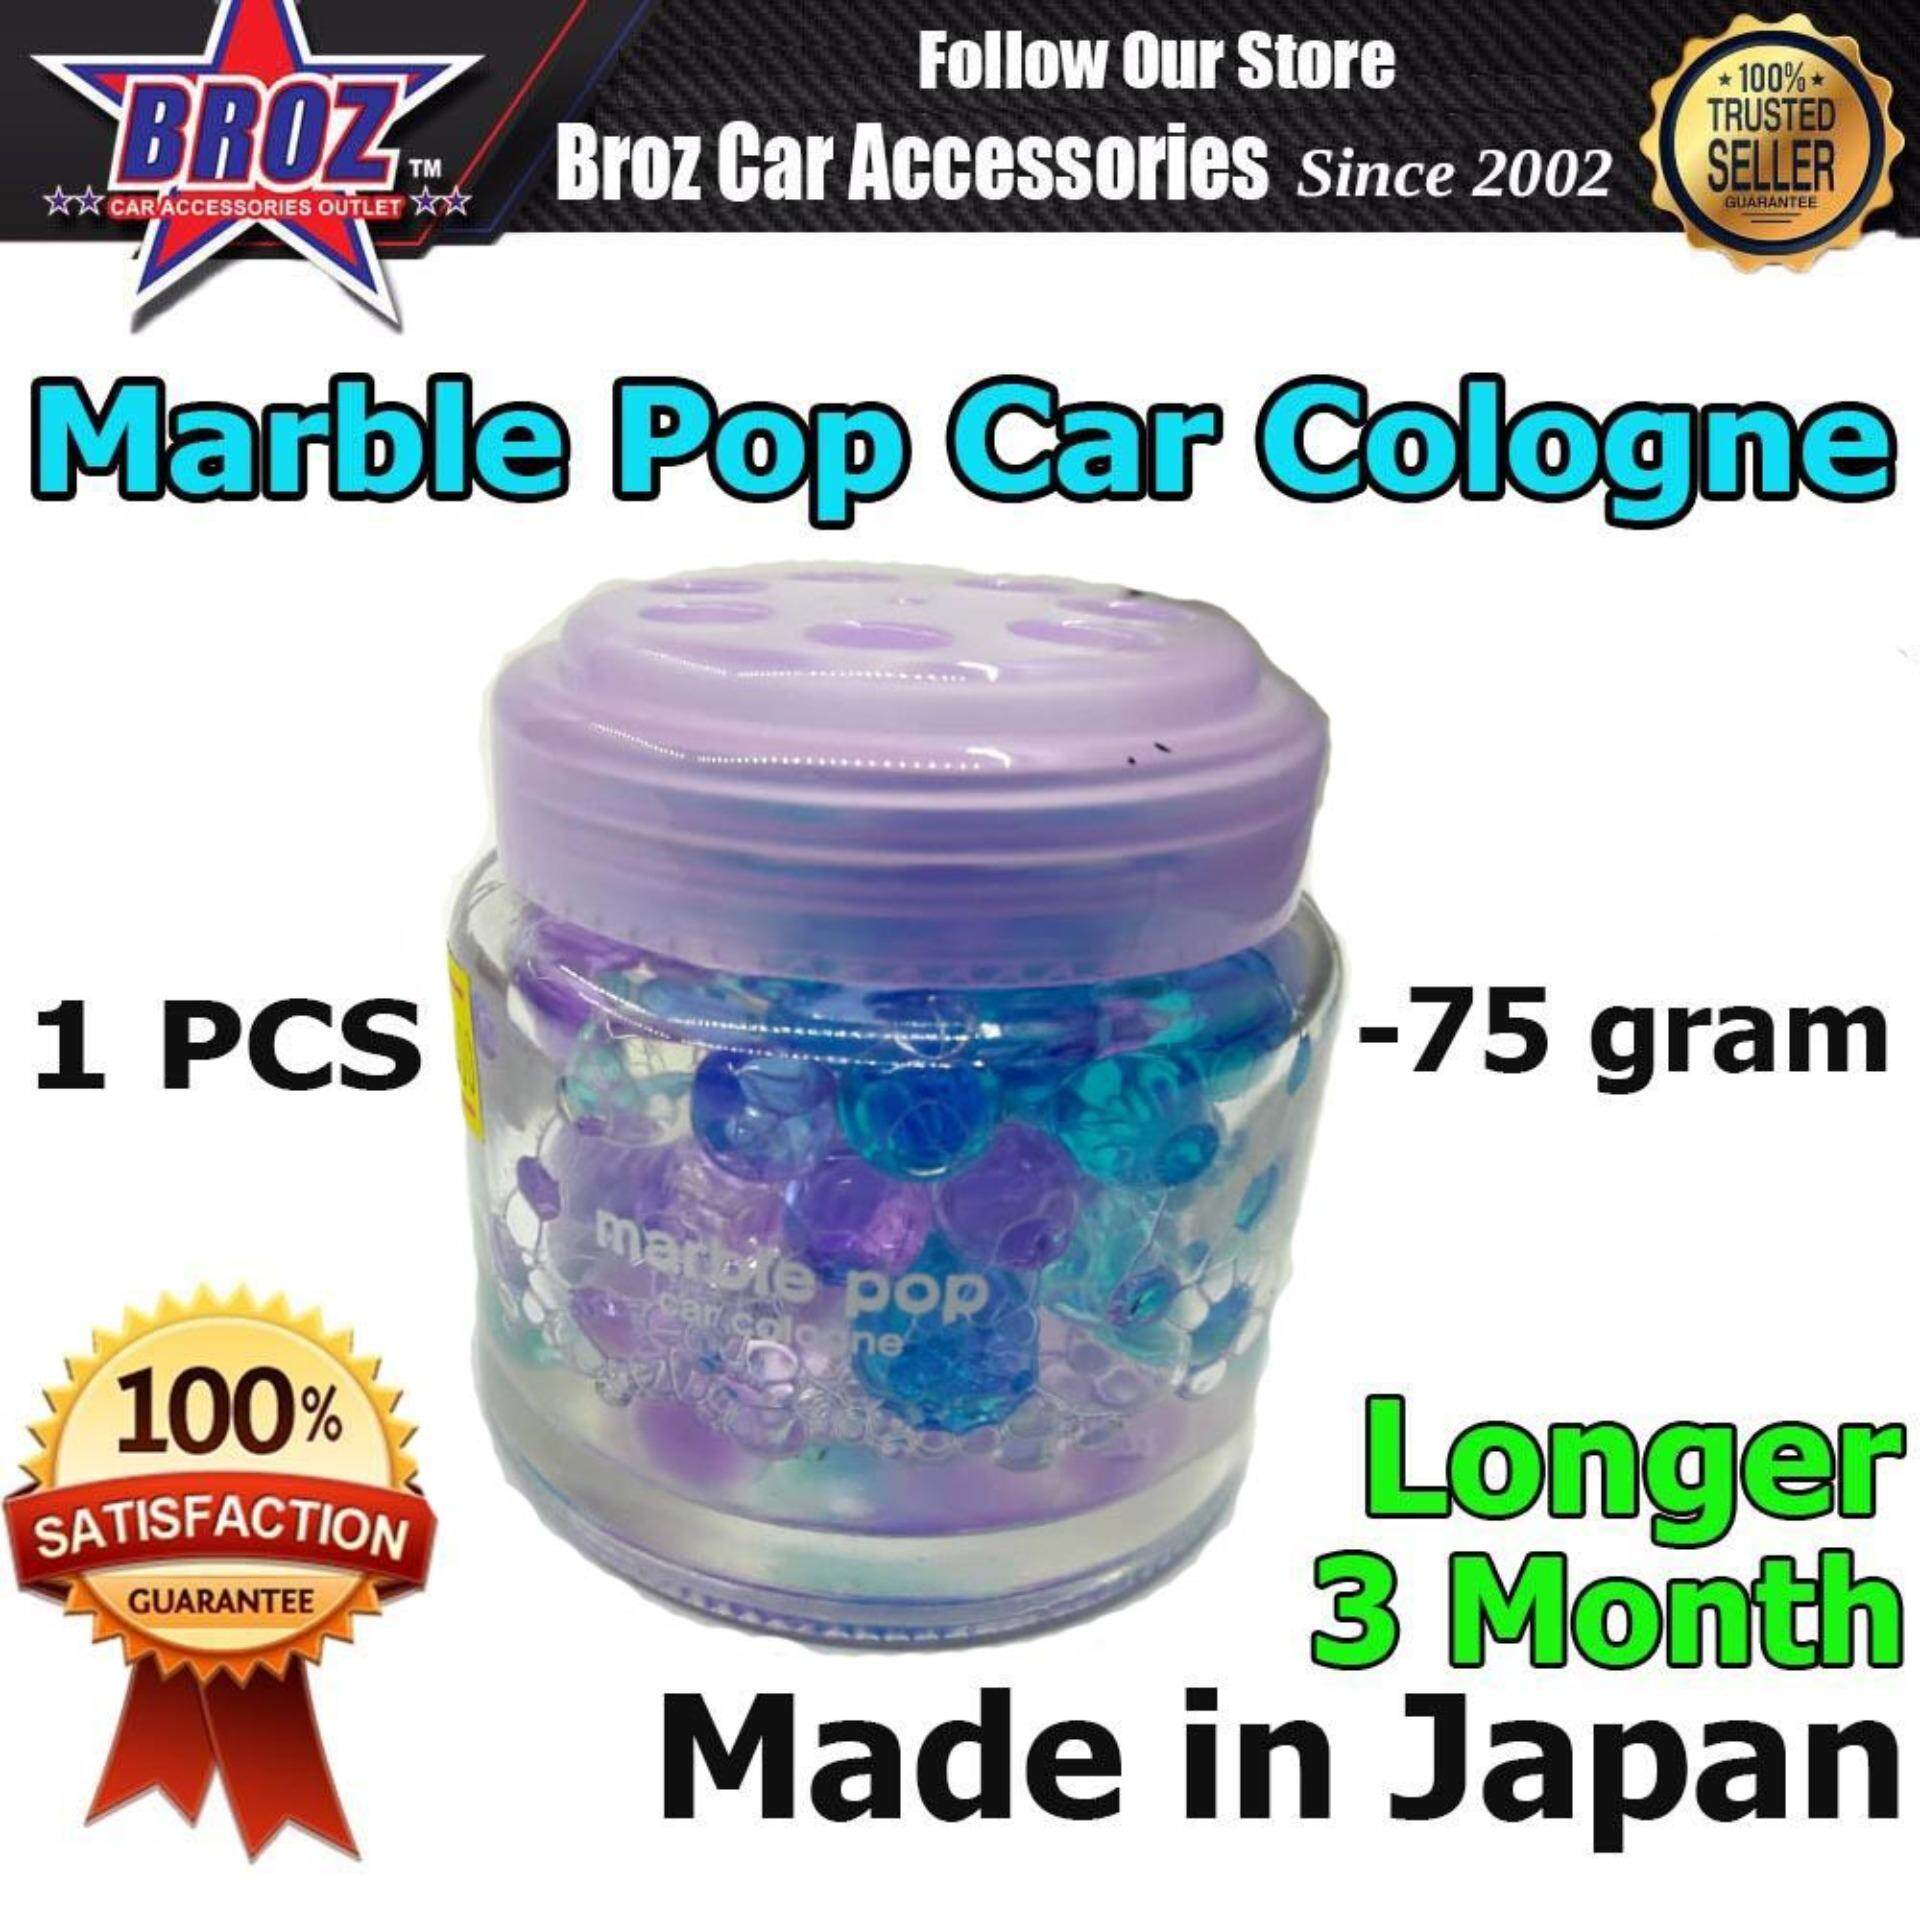 Marble Pop Car Cologne Silky Shampoo Car Air Freshener Perfume Made in Japan